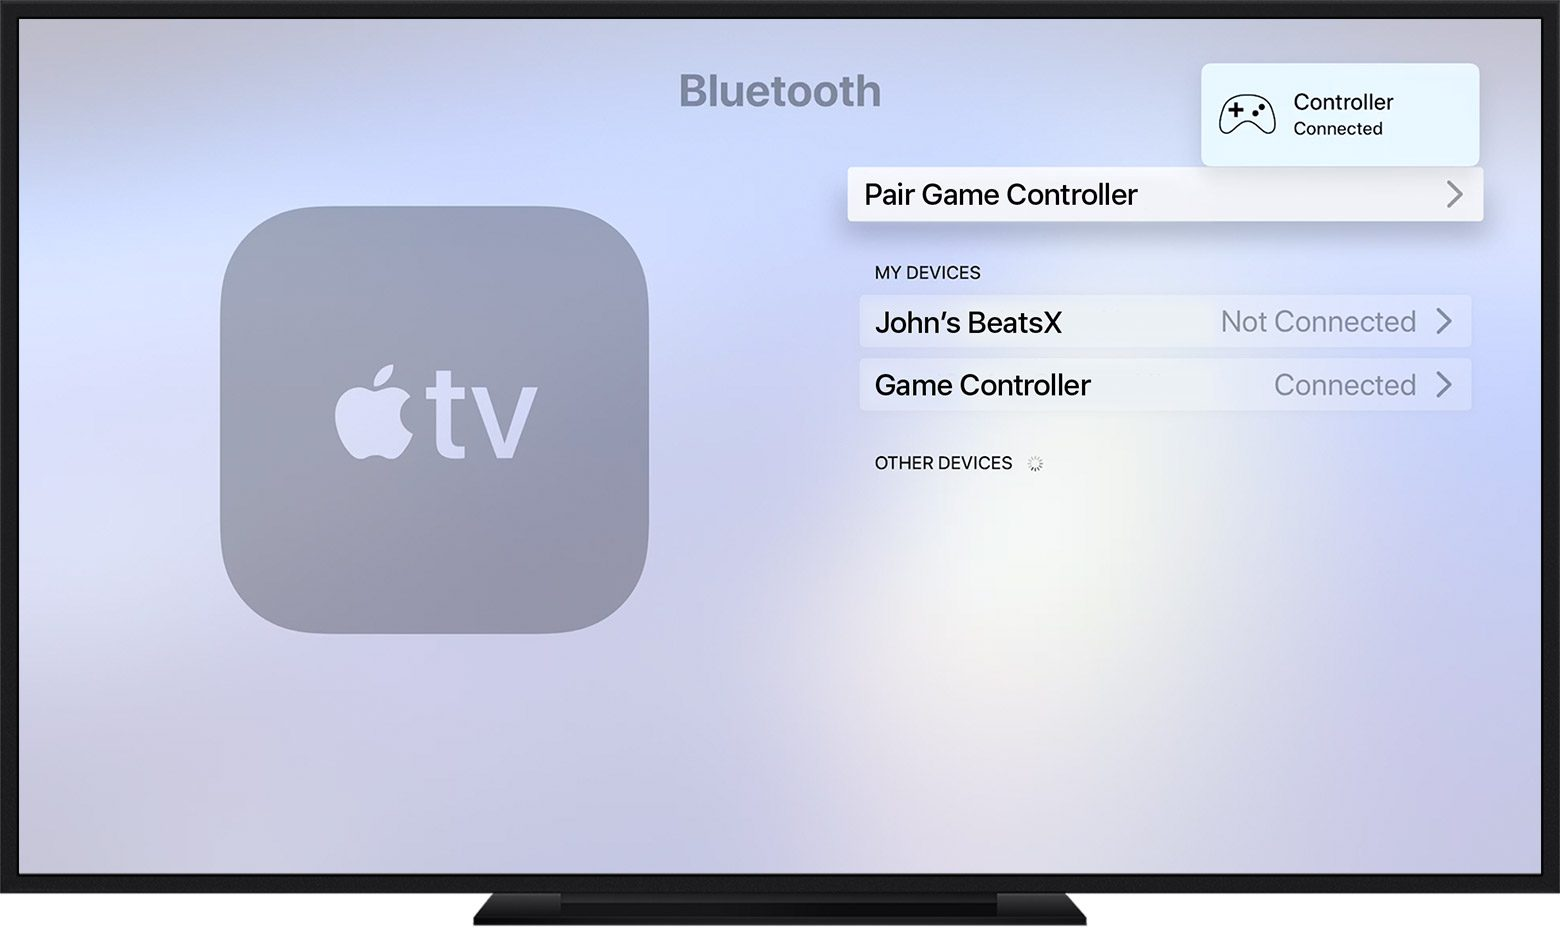 Pairing a controller to an Apple TV